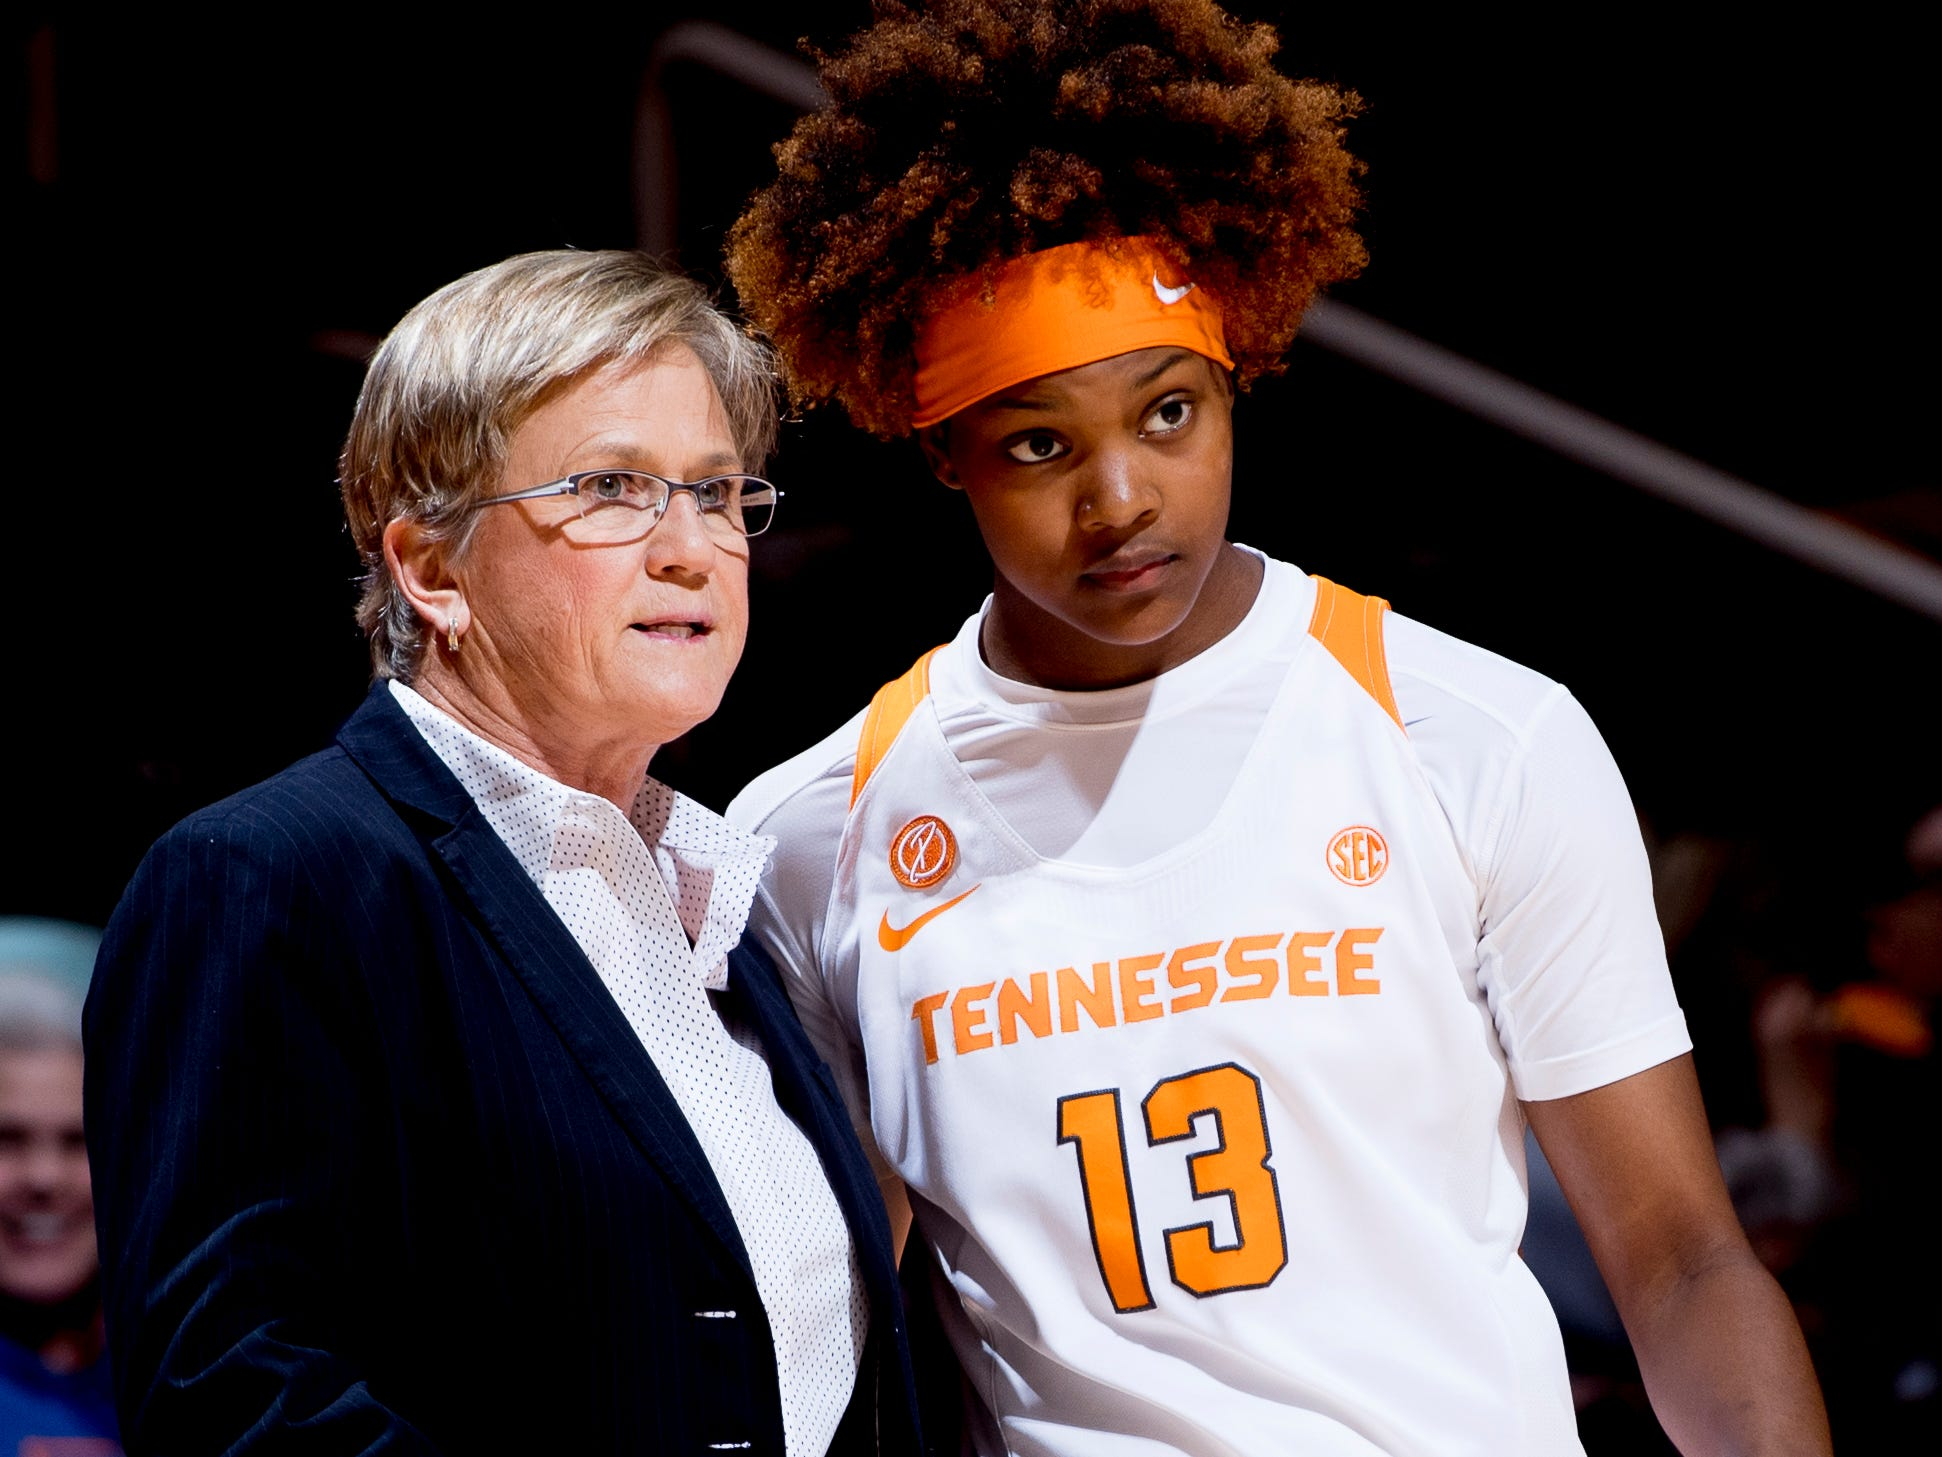 Tennessee Head Coach Holly Warlick speaks with Tennessee guard Jazmine Massengill (13) during a game between Tennessee and UNC Asheville at Thompson-Boling Arena in Knoxville, Tennessee on Wednesday, November 14, 2018.